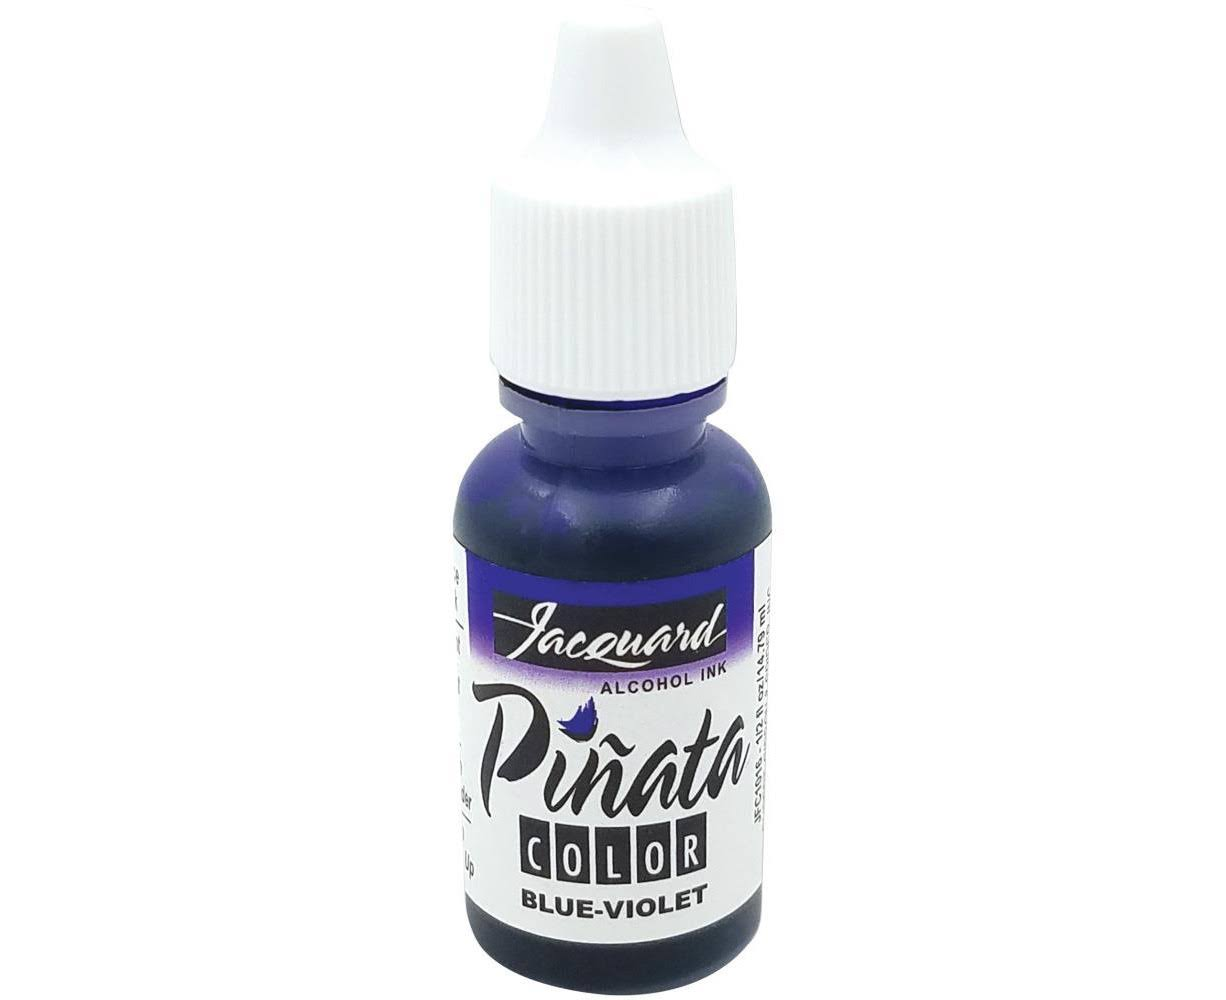 Jacquard Pinata Color Alcohol Ink .5oz-Blue Violet